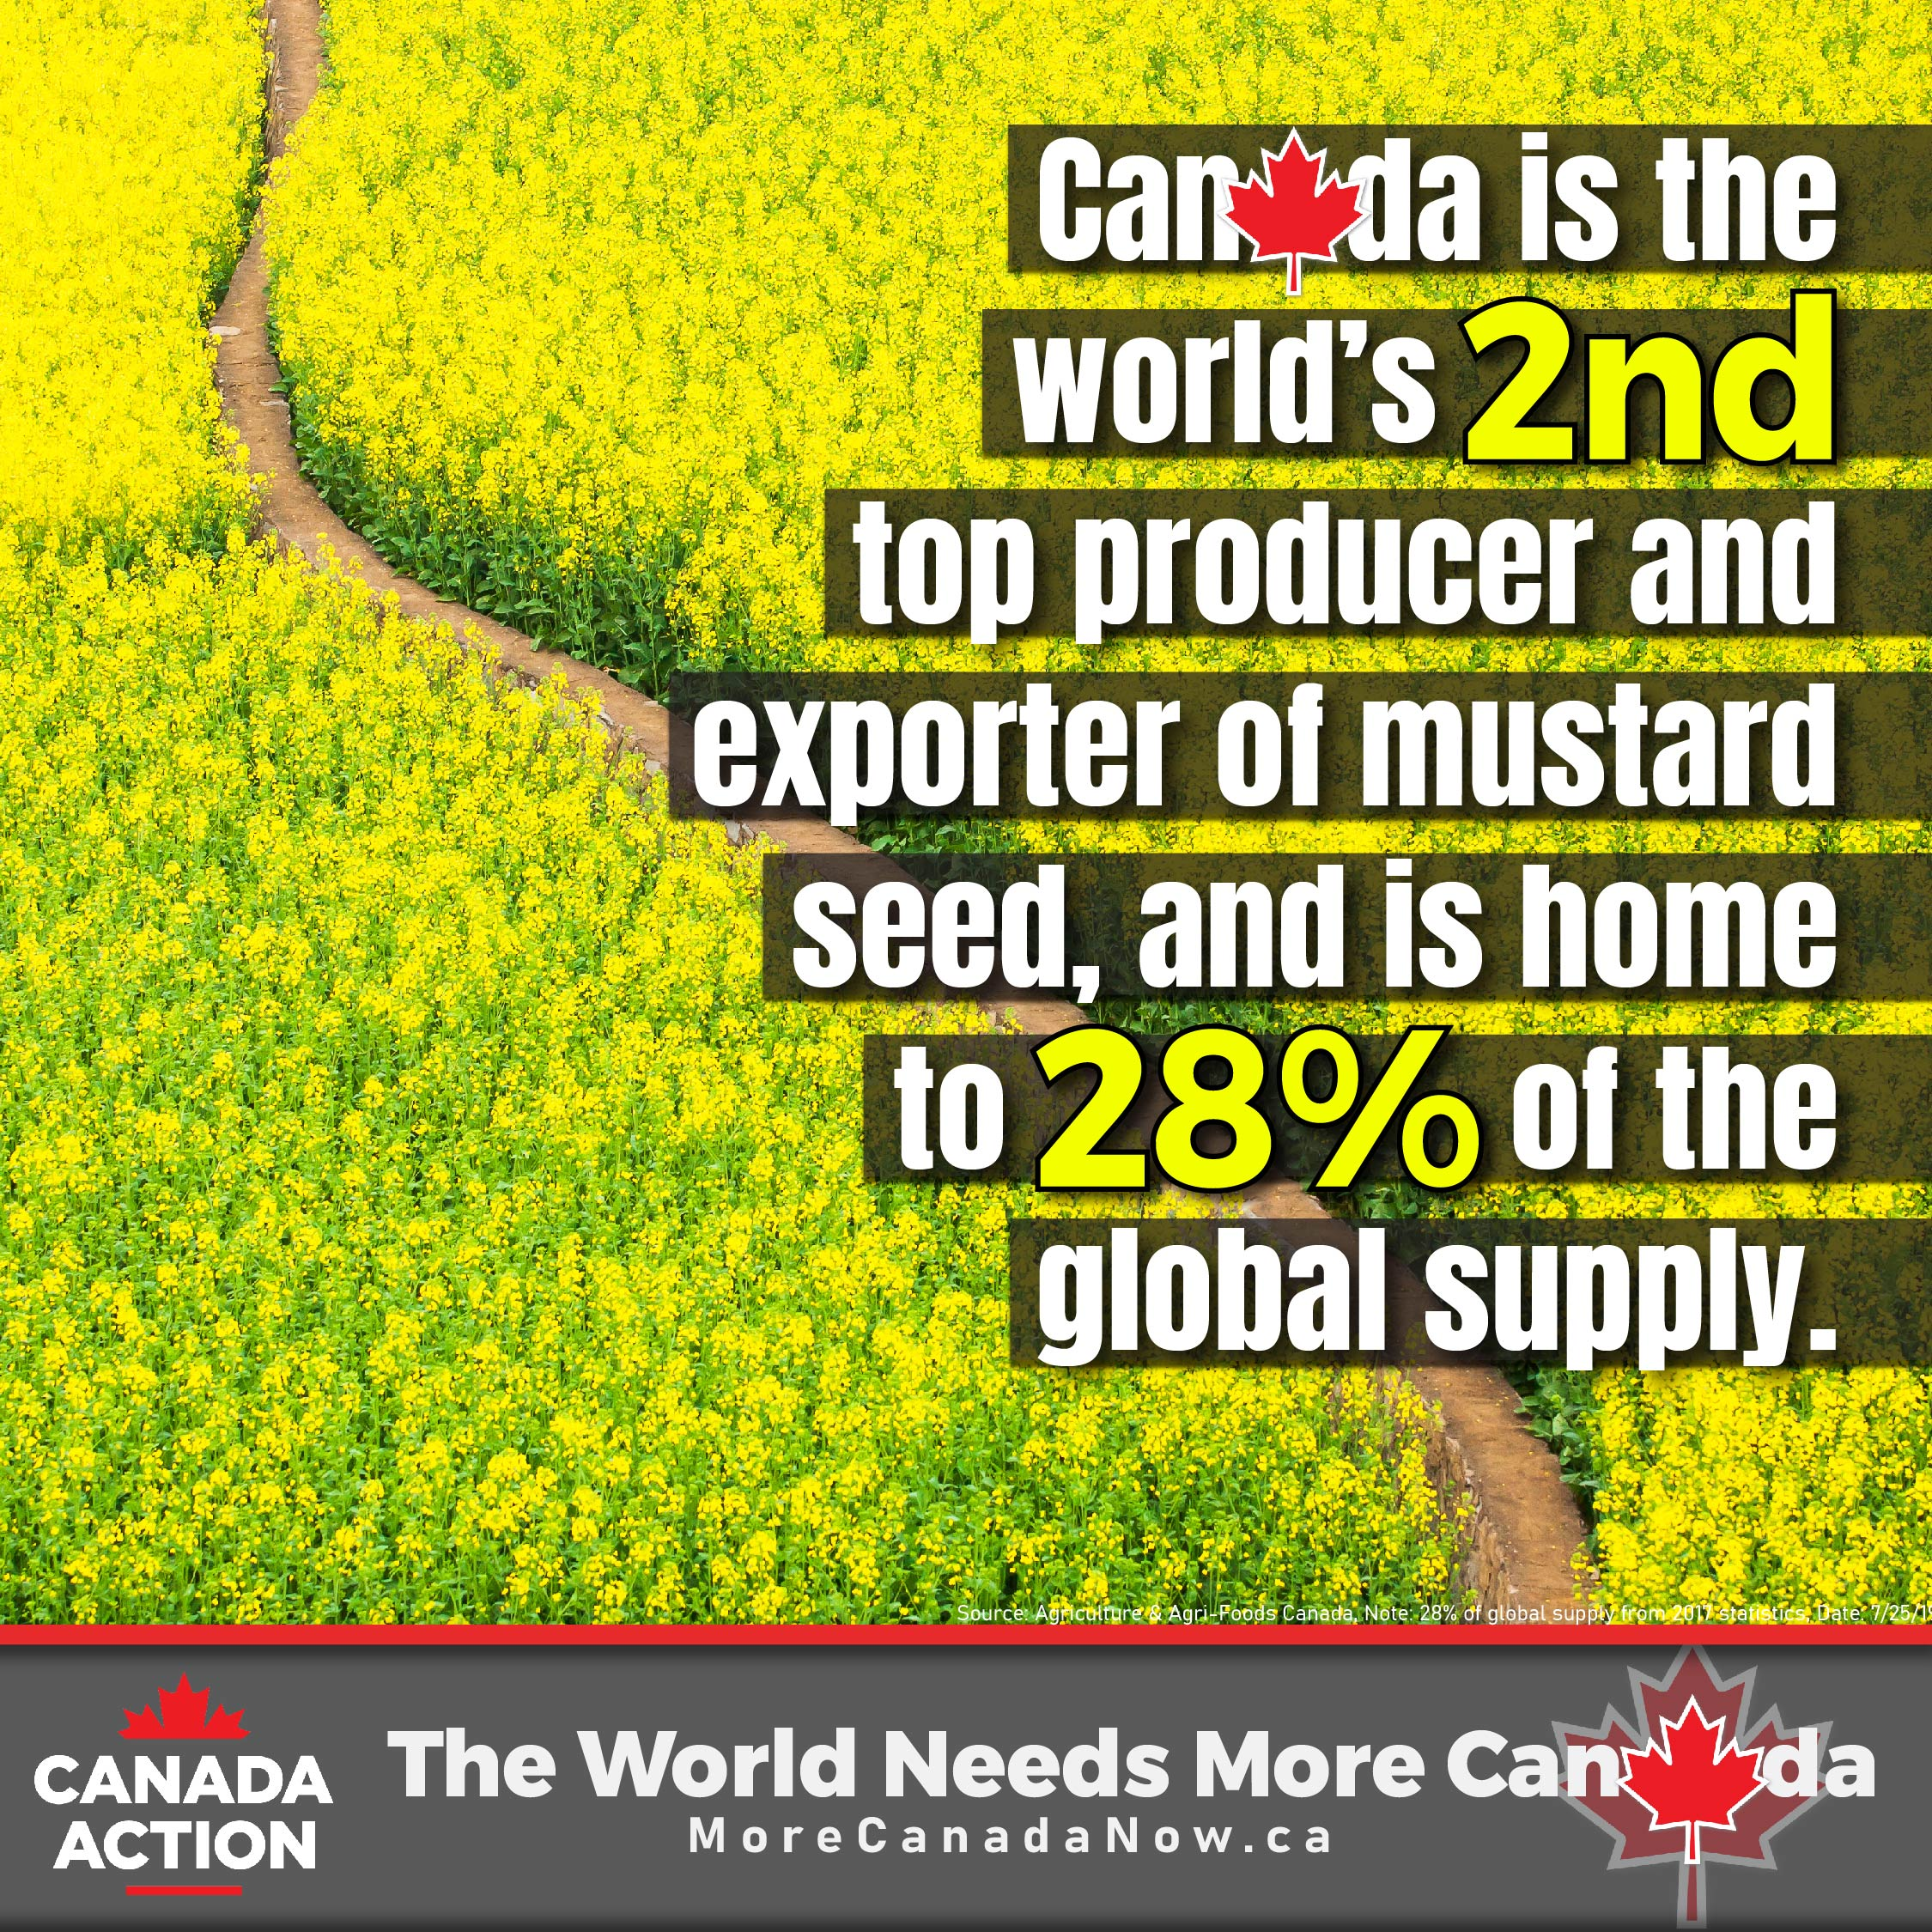 canadian canola seed farming - 2nd largest producer and exporter